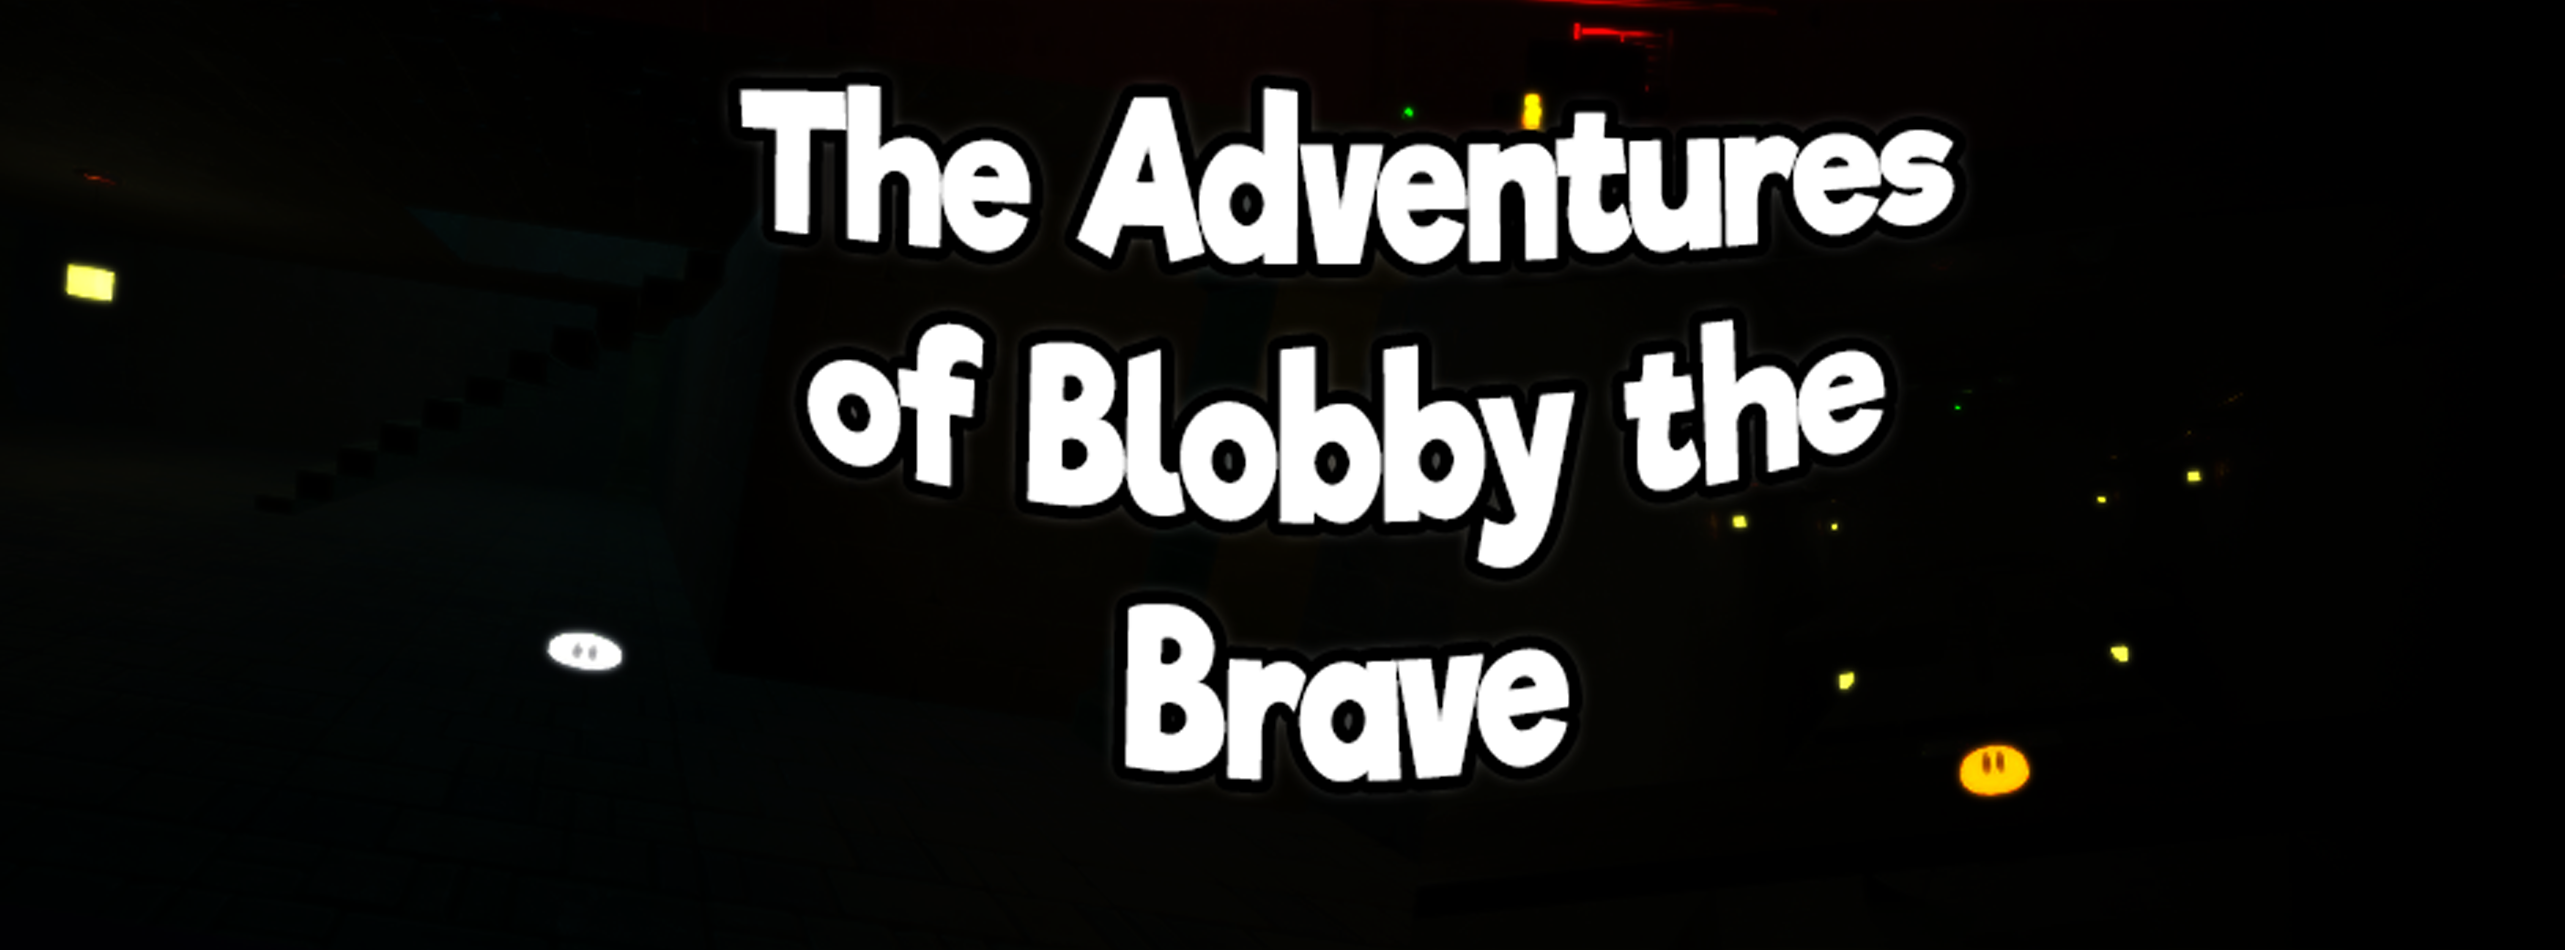 The Adventures of Blobby the Brave